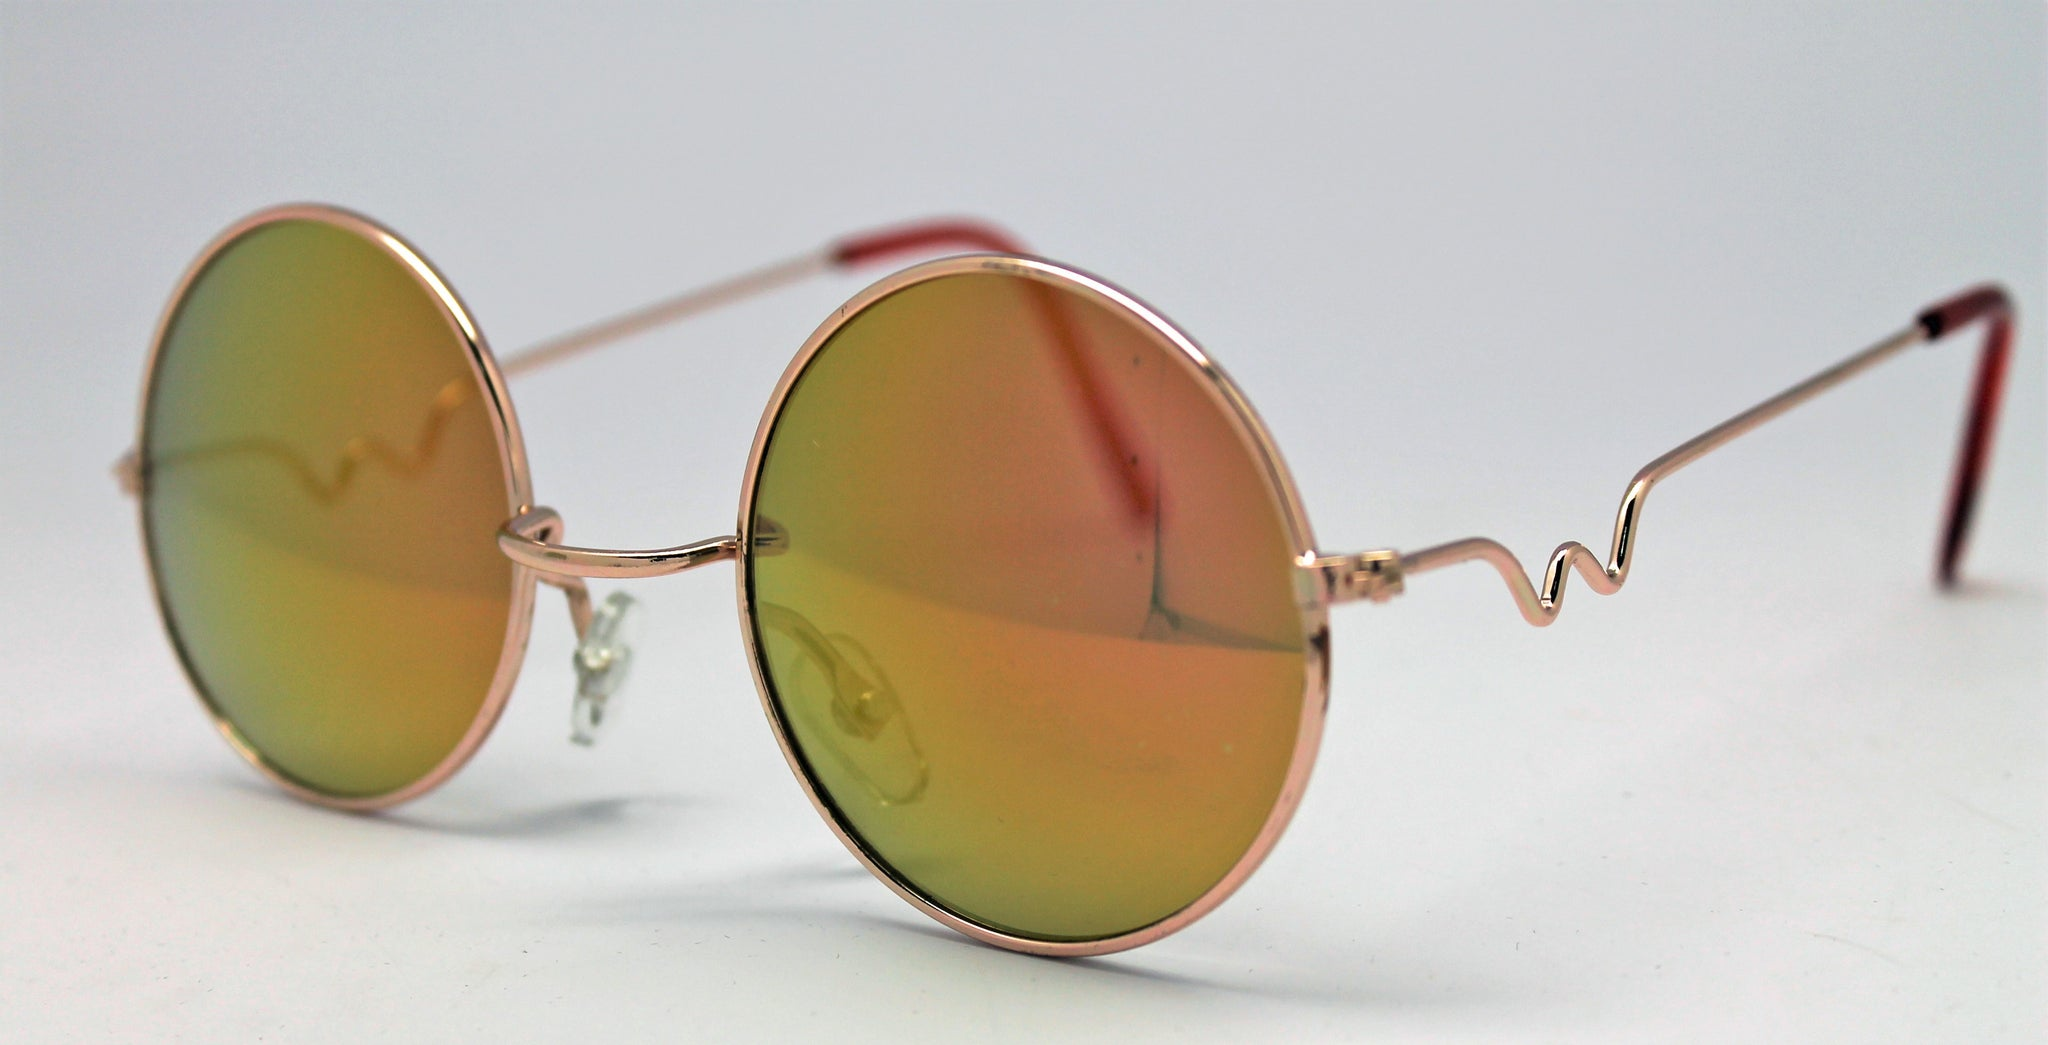 9ee687632fcd Lennon Style Sunglasses with Gold Red Mirror Lenses Gold Frames